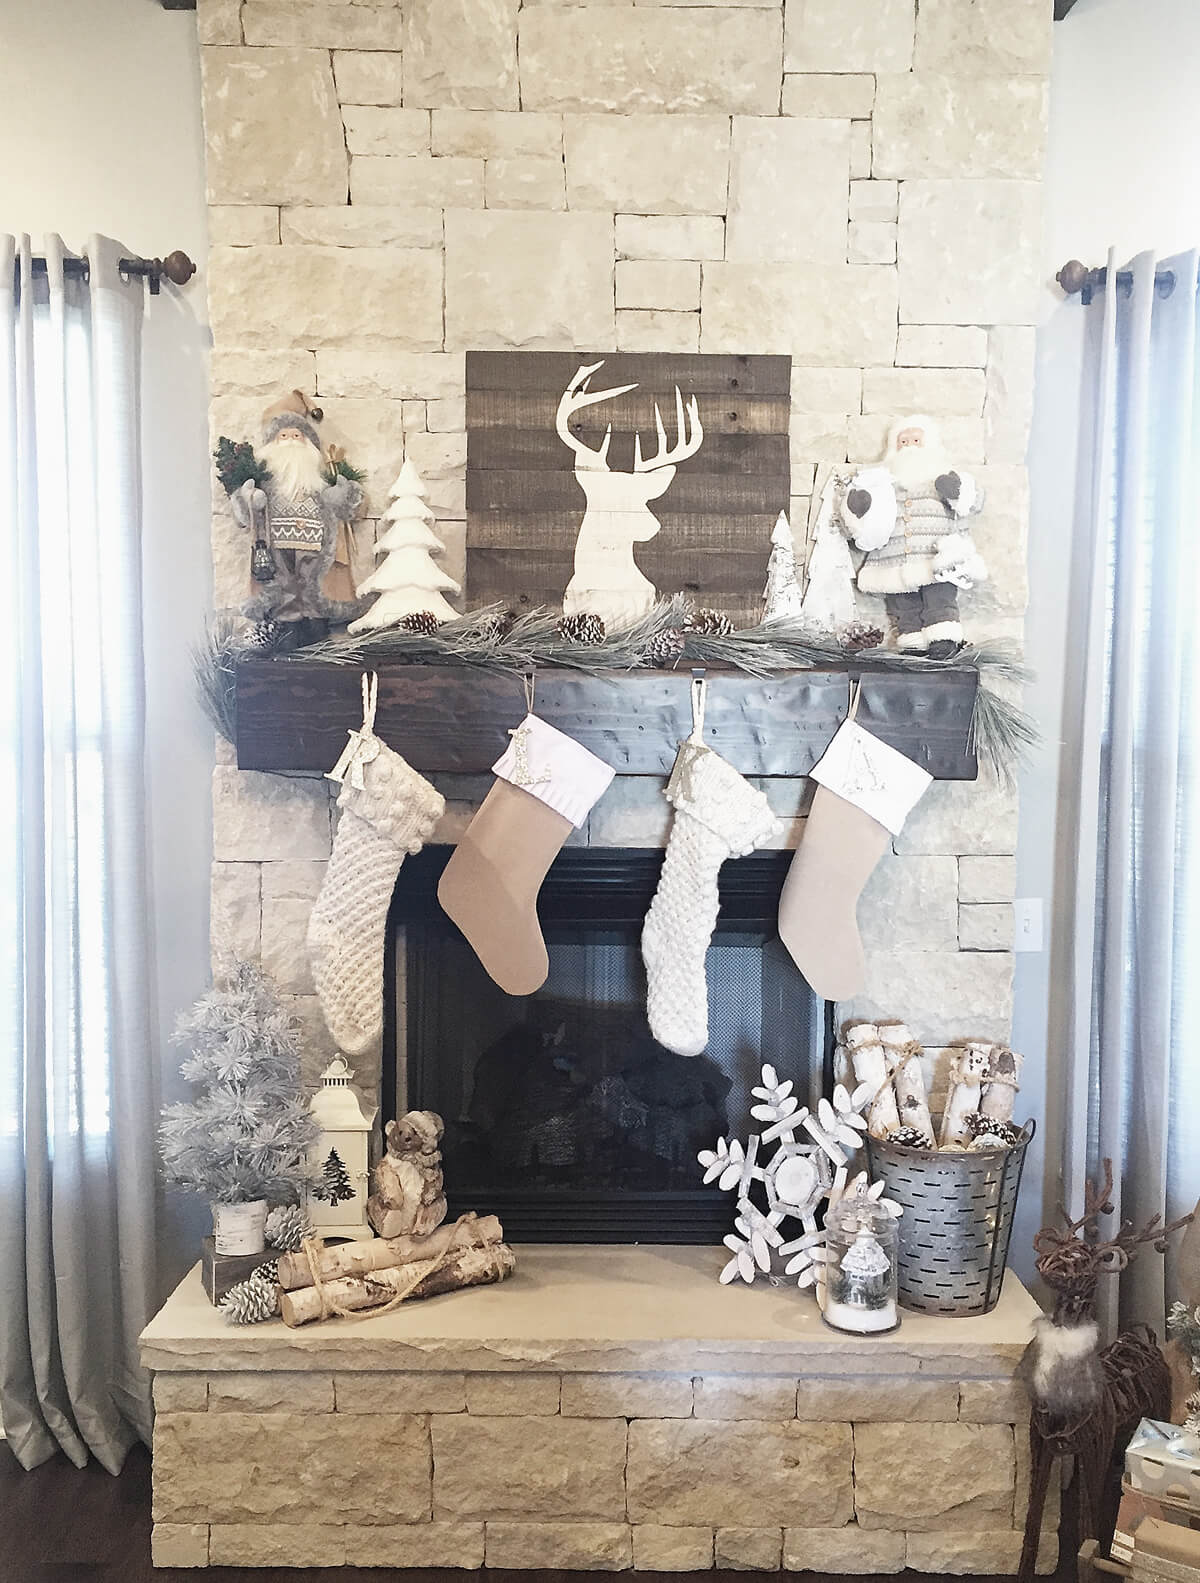 Mismatched Neutrals Create a Rustic Display